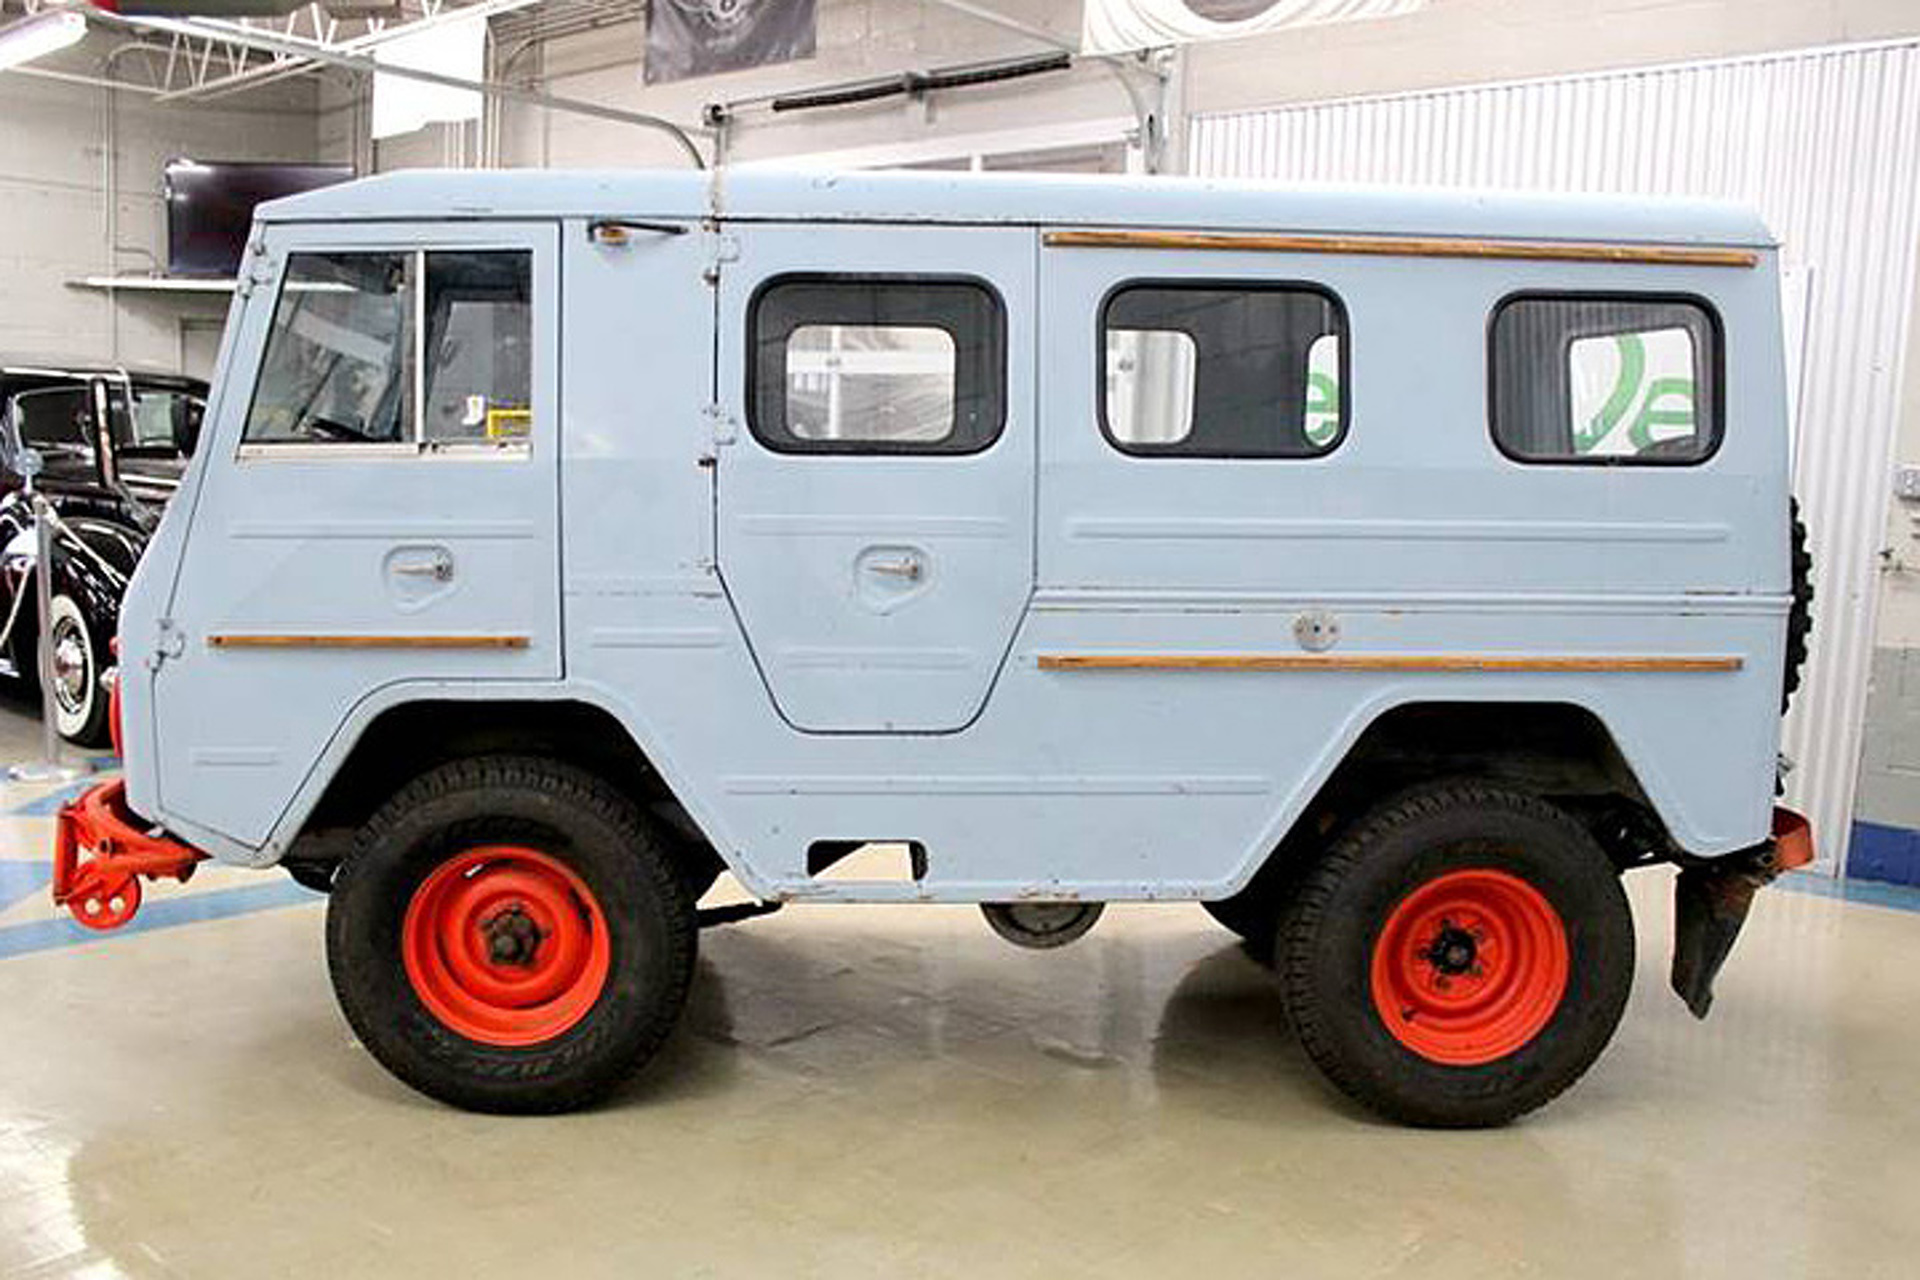 Military Jeep For Sale >> Buy This Vintage Volvo Laplander 4x4, Be the Coolest Person on the Trail